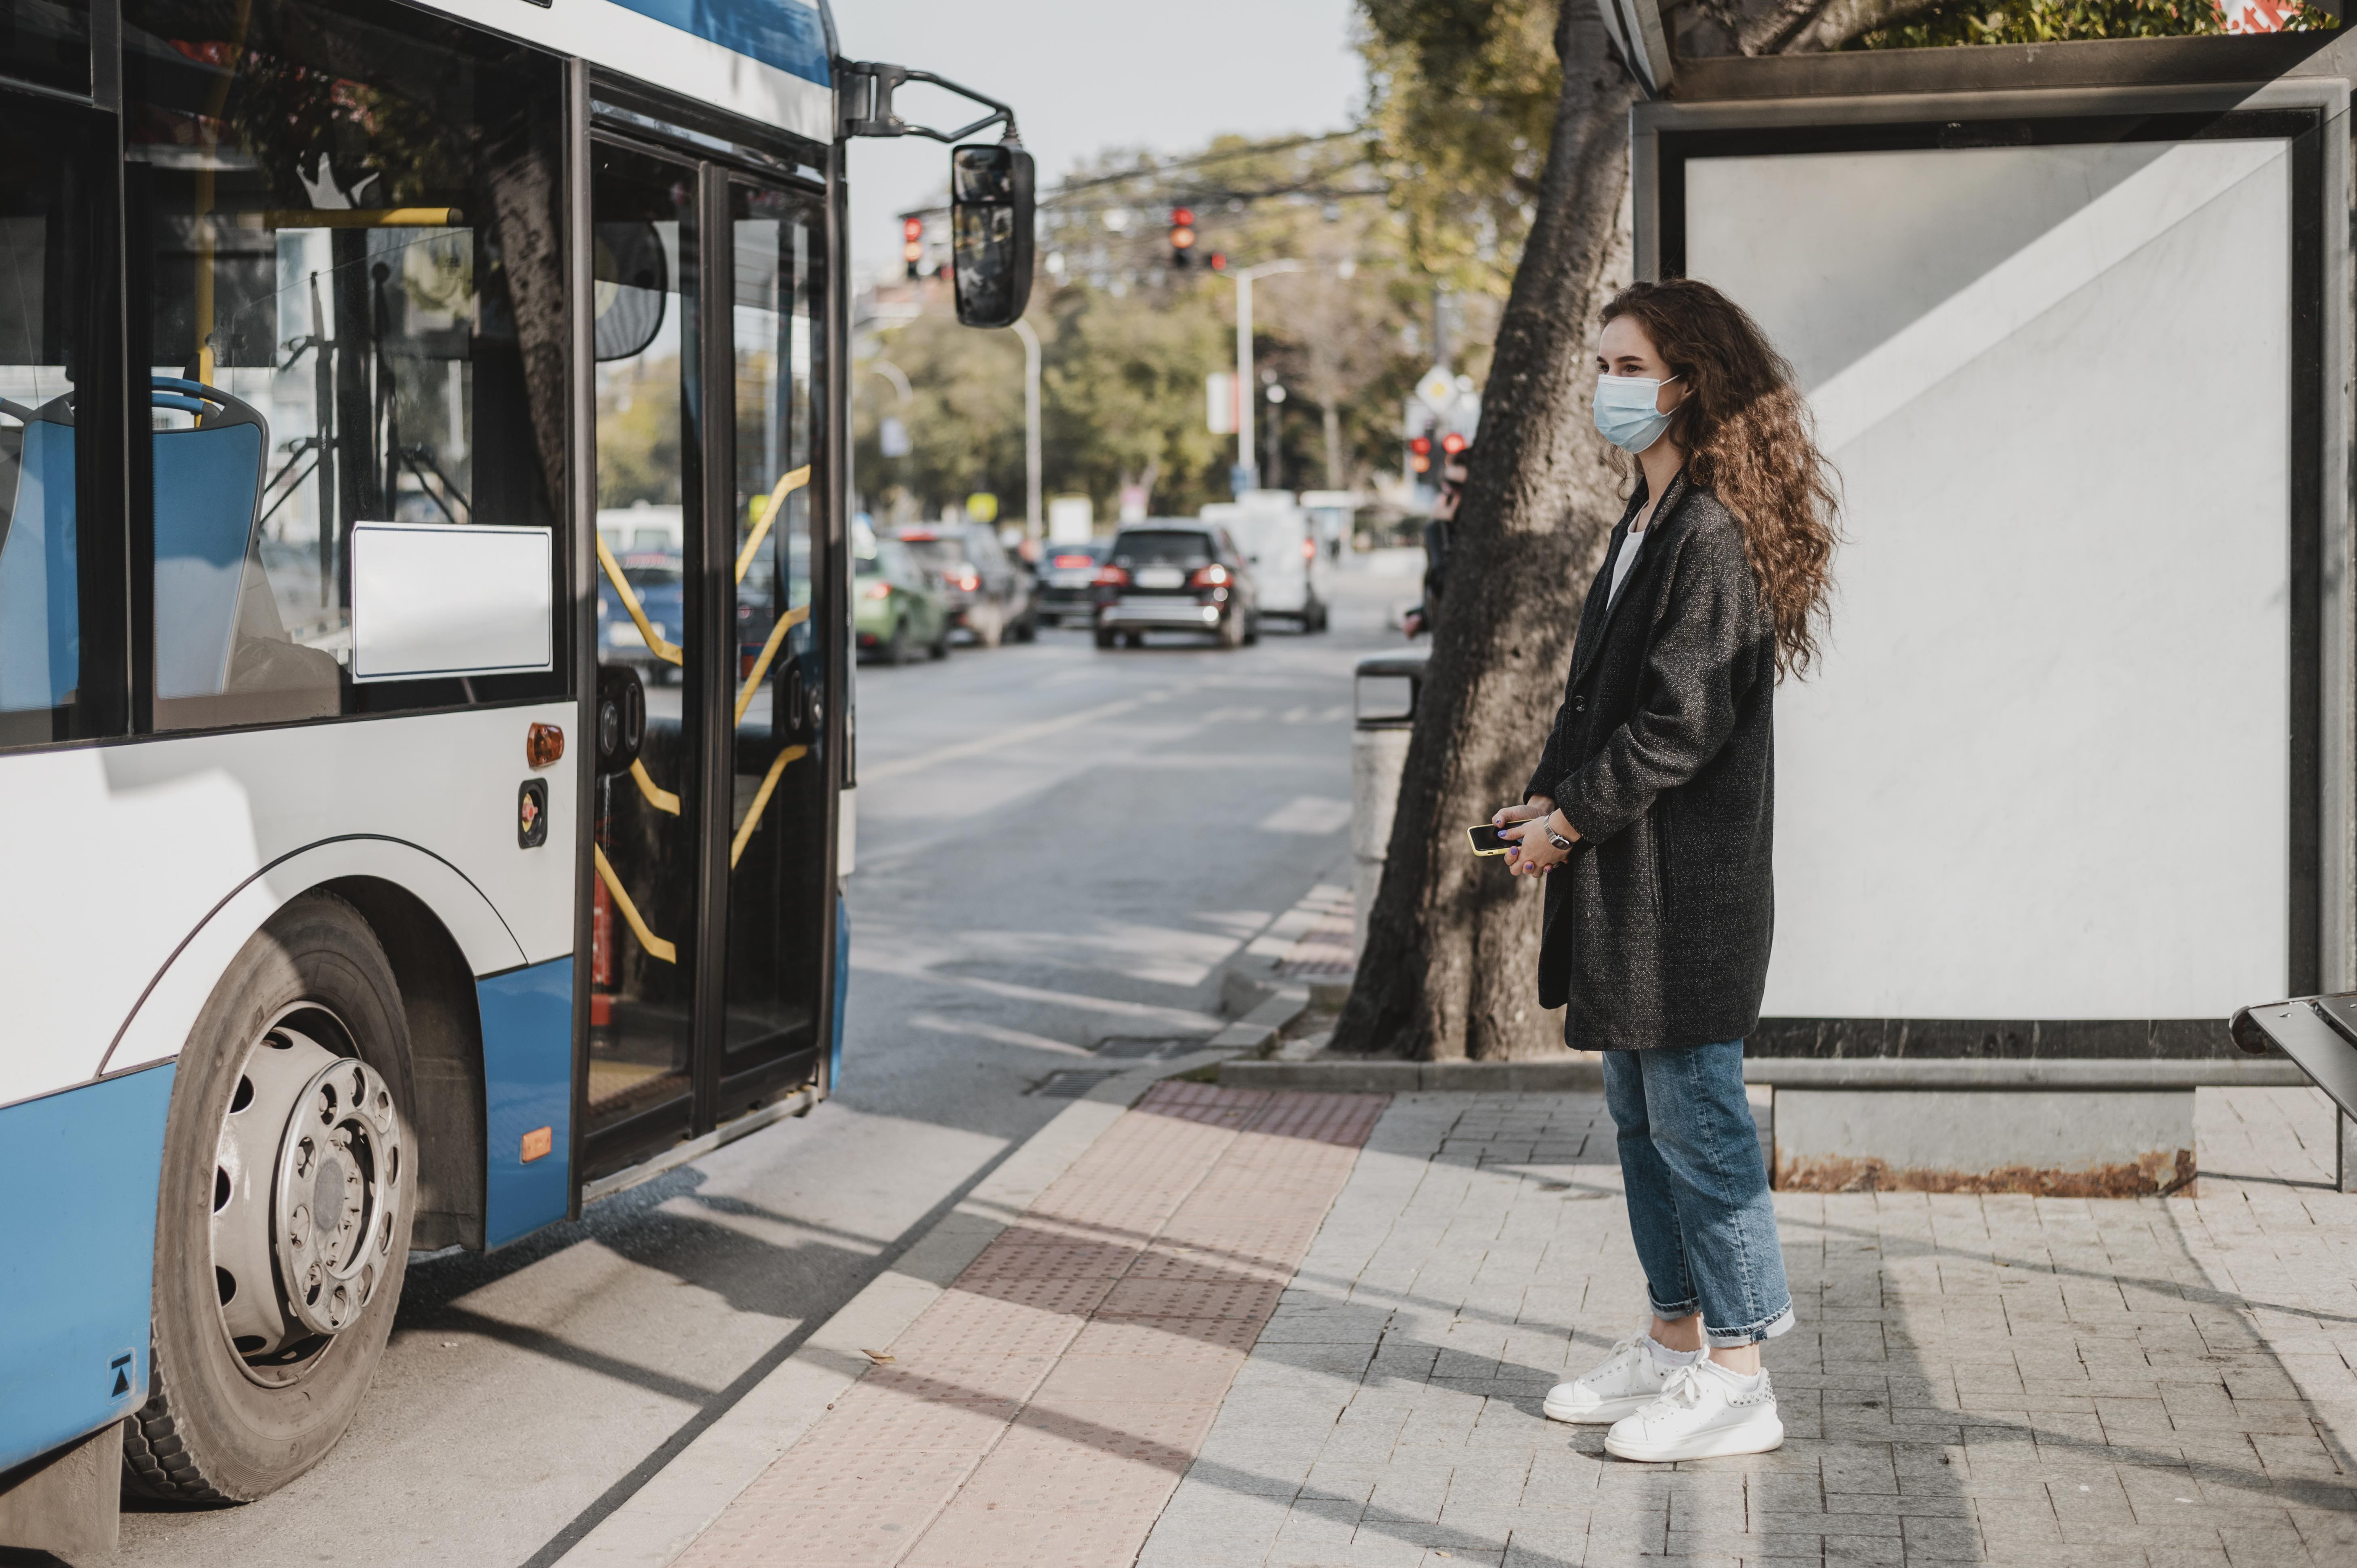 side-view-woman-waiting-for-the-bus